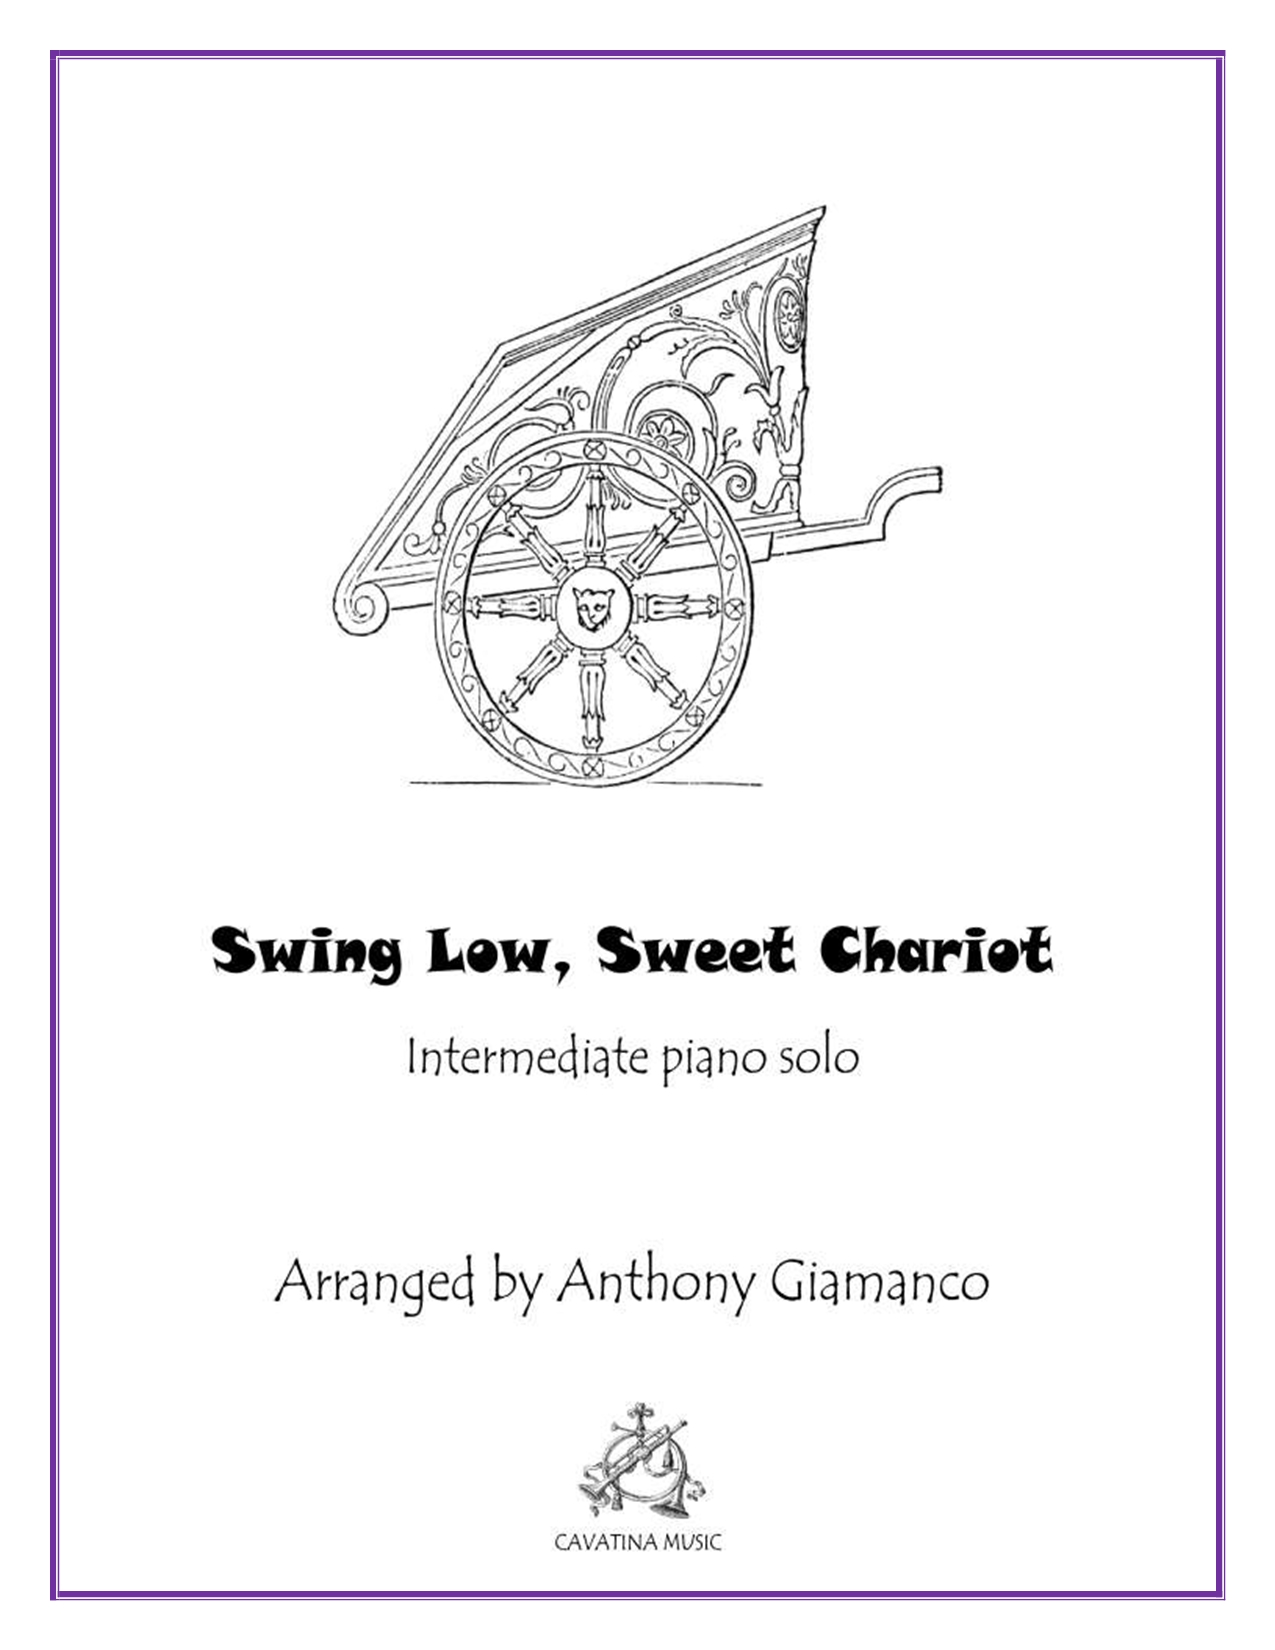 SWING LOW, SWEET CHARIOT - piano solo